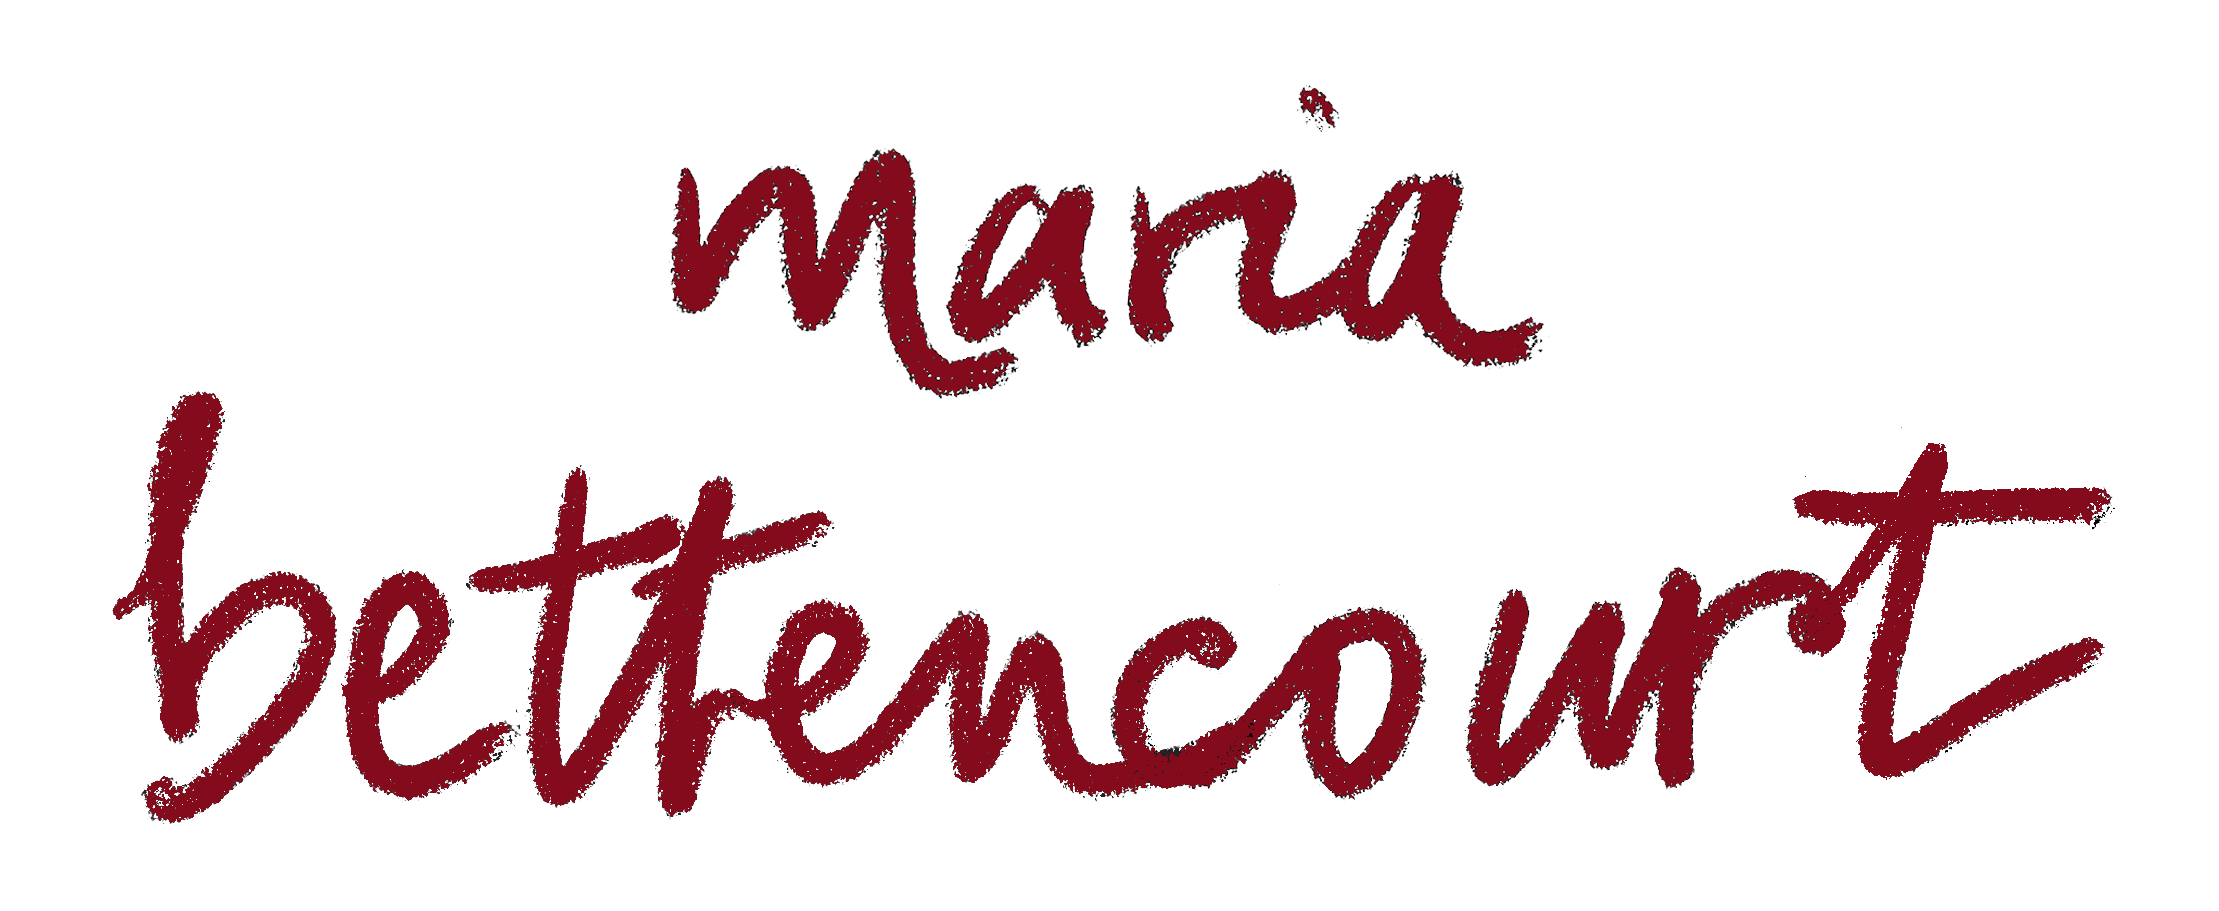 lettering-maria-2019 centered rouge.png